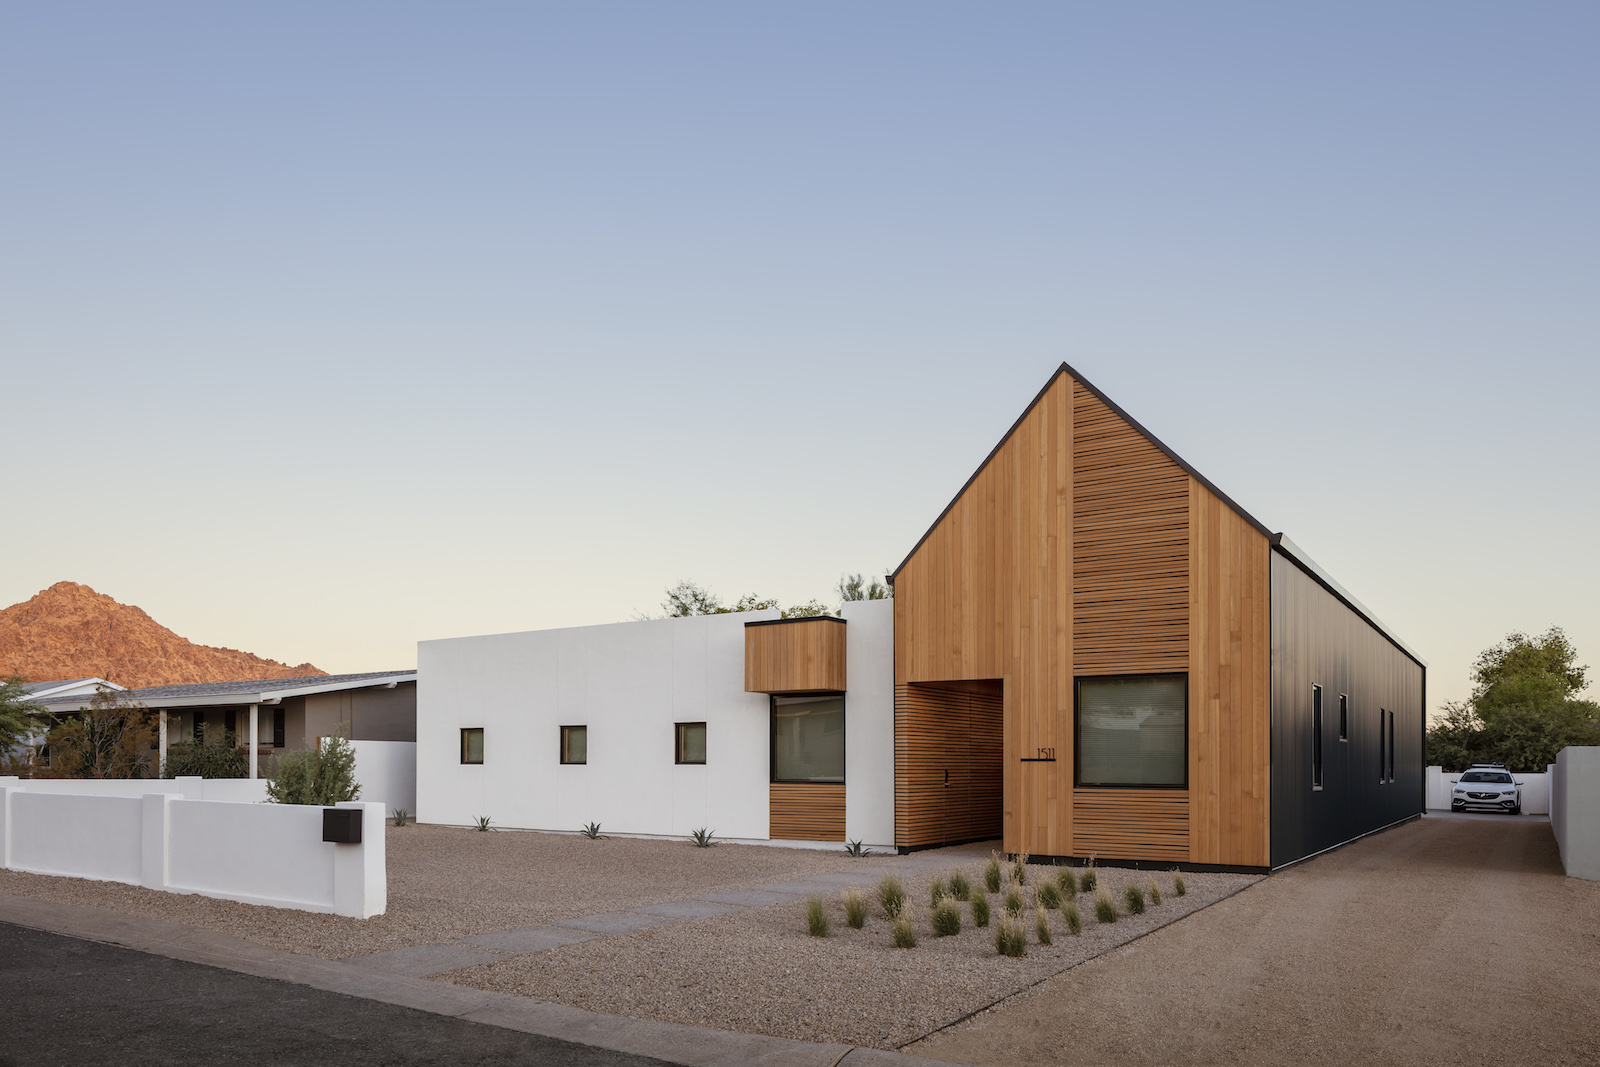 House in the desert has a gabled roof on one end and flat roof on the other. If features a white and wood exterior.